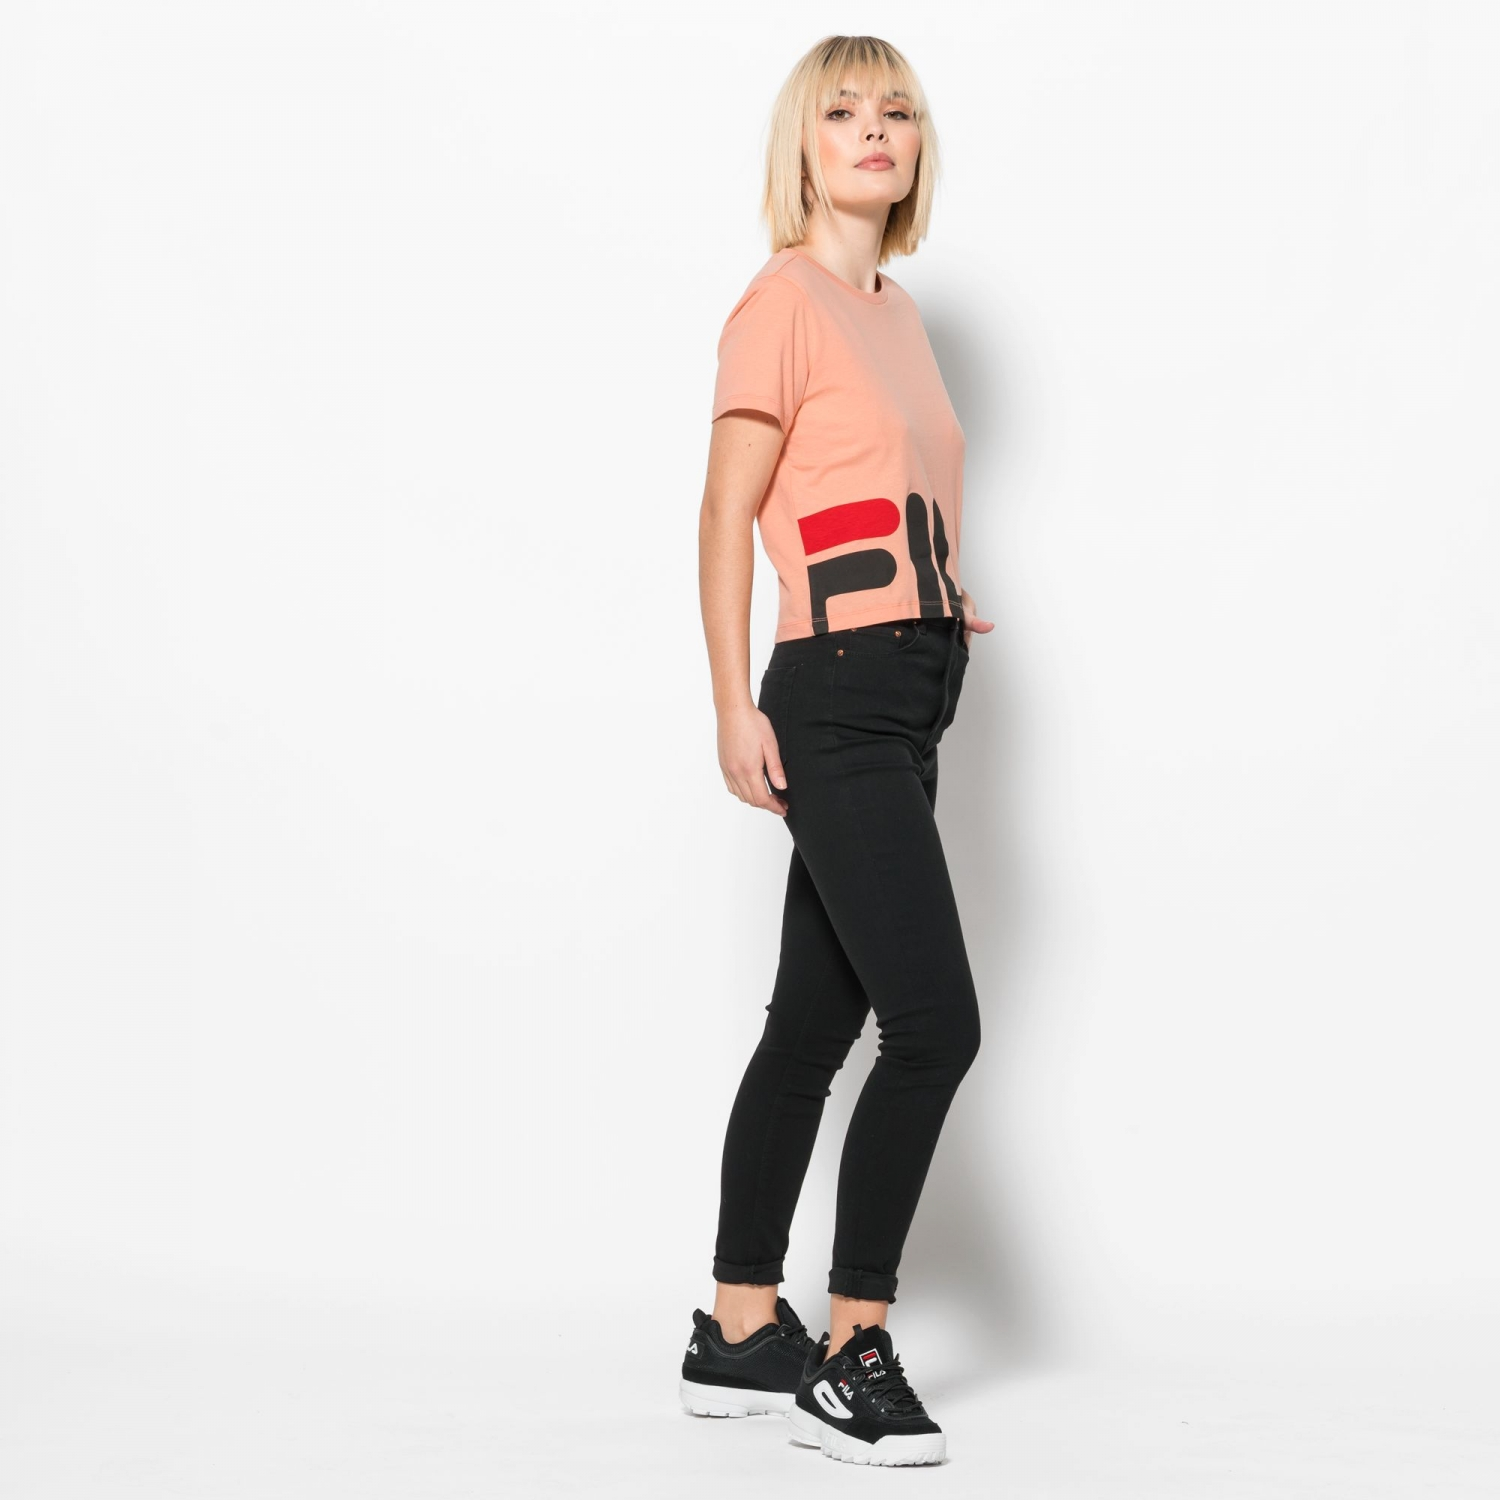 Fila Early Cropped Tee salmon Bild 3